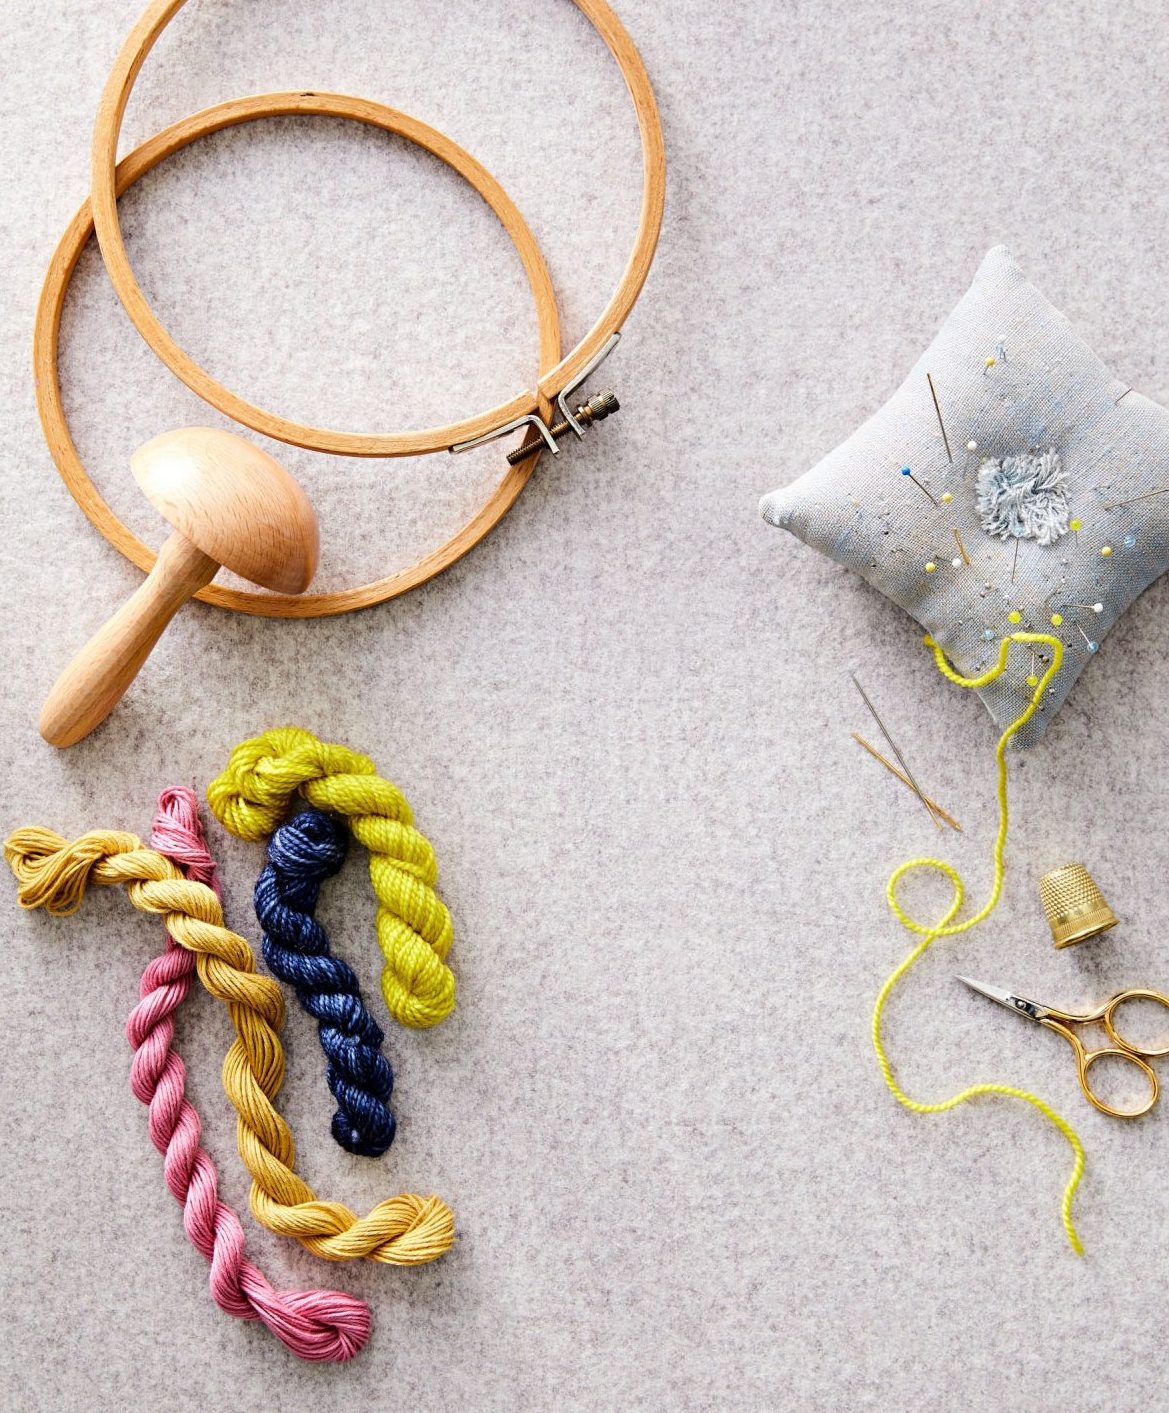 sewing supplies to mend clothes